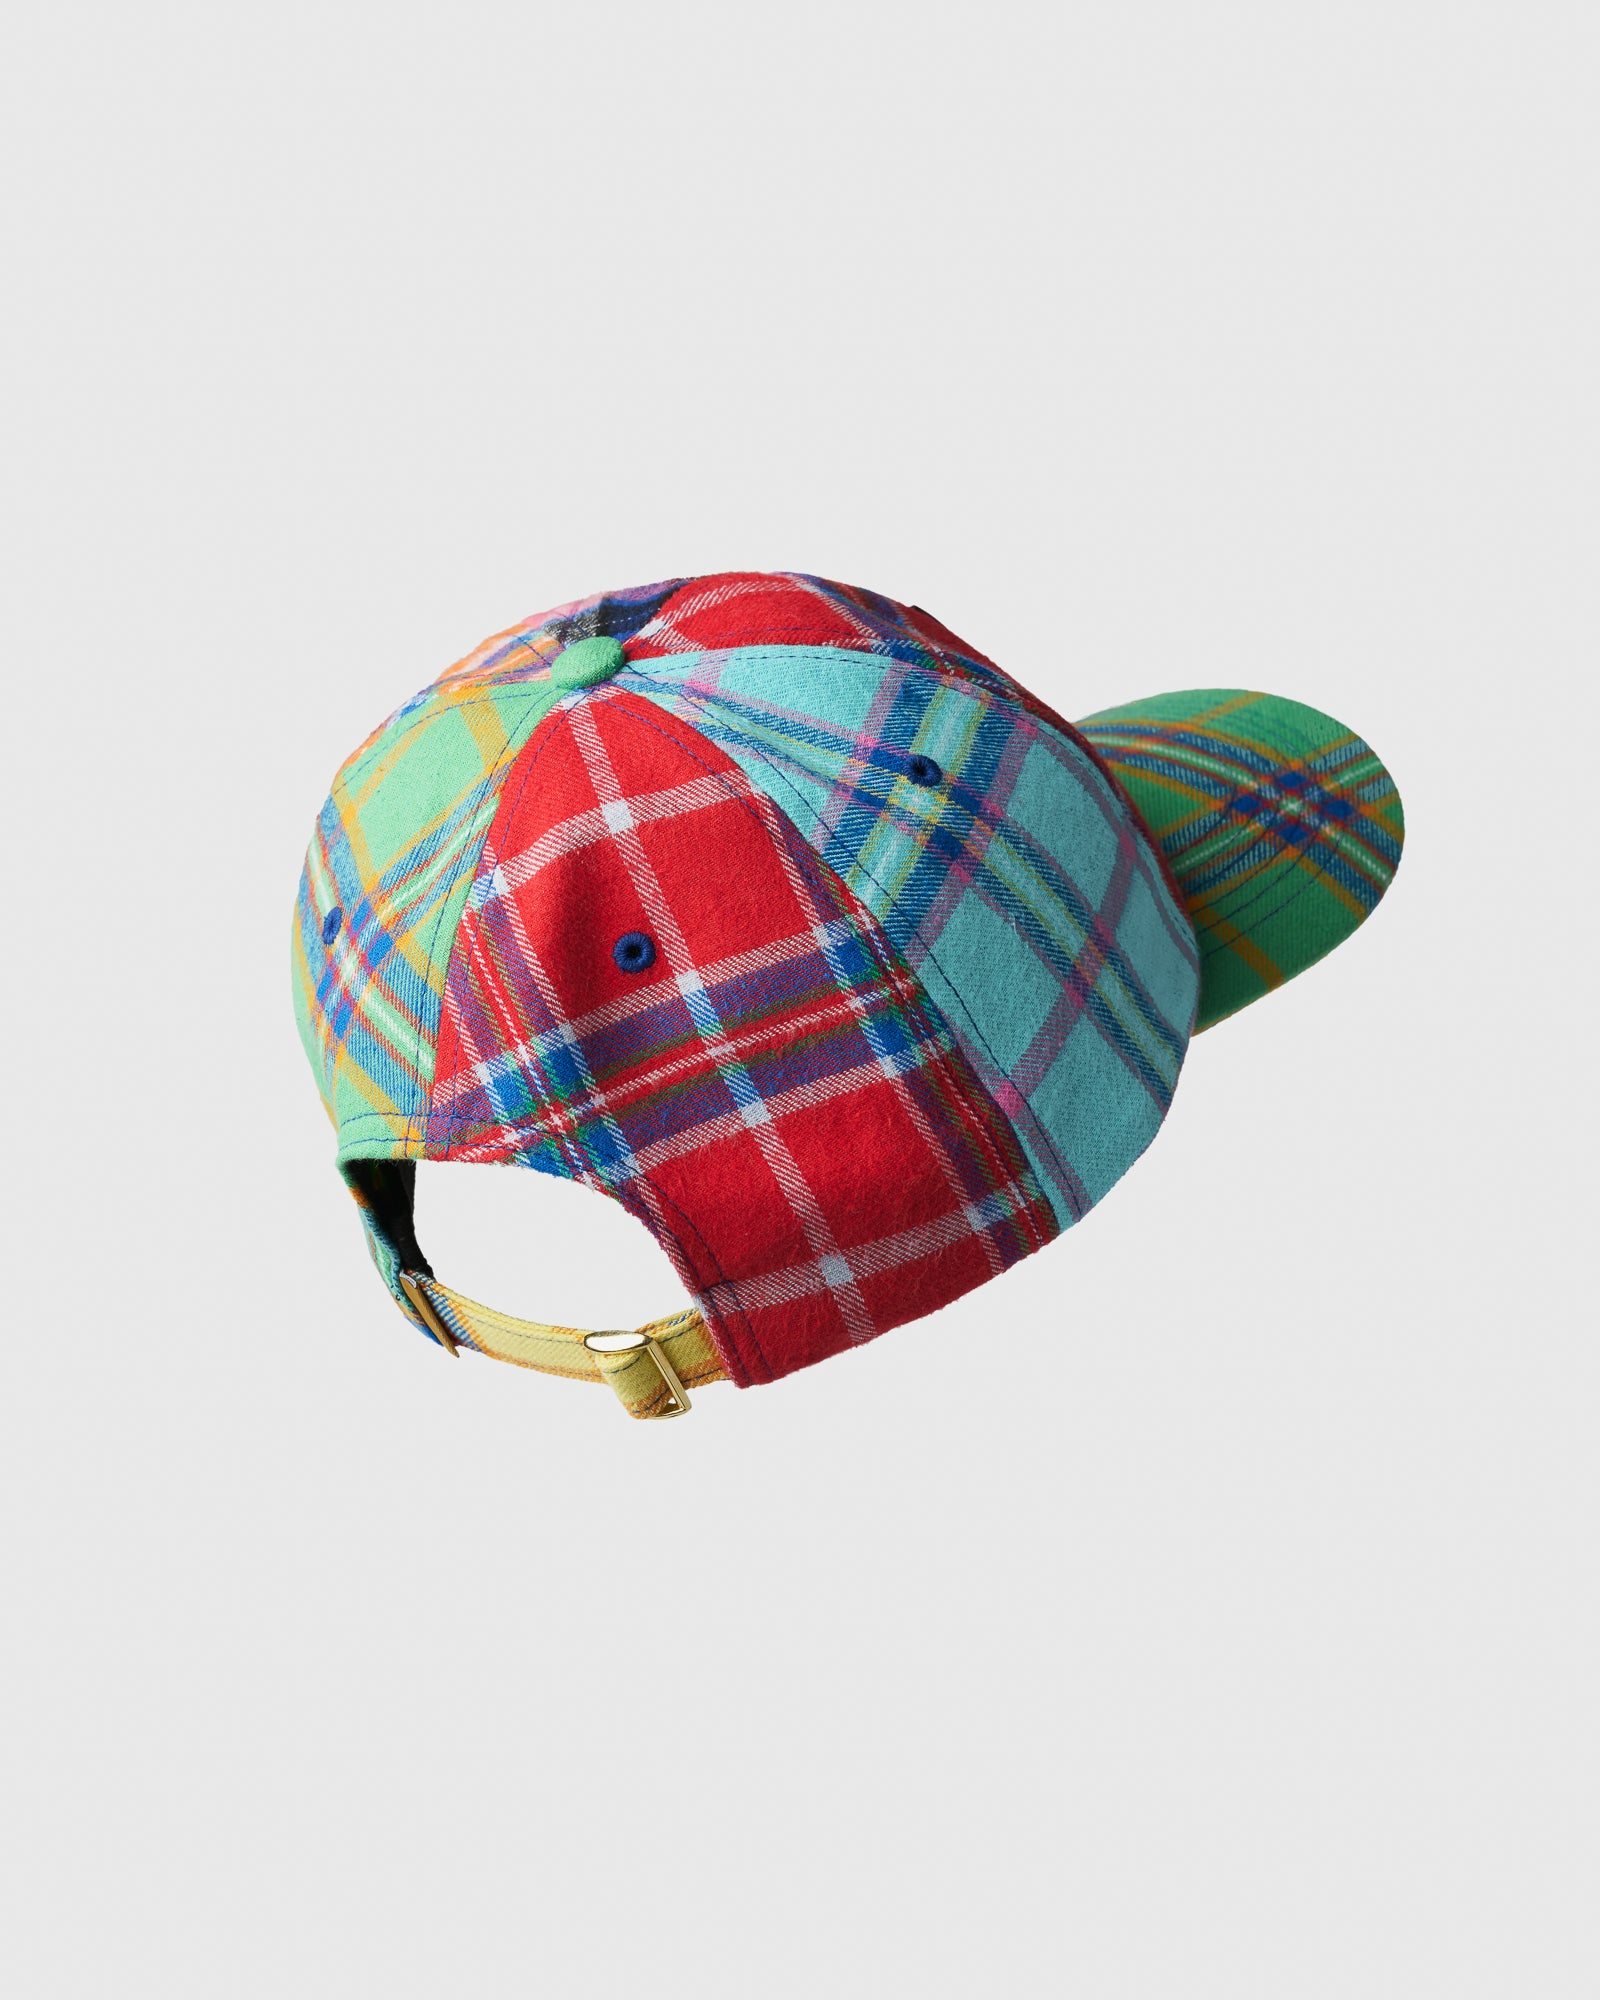 COLOUR BLOCK POM POM PLAID SPORT CAP - MULTI COLOUR IMAGE #2